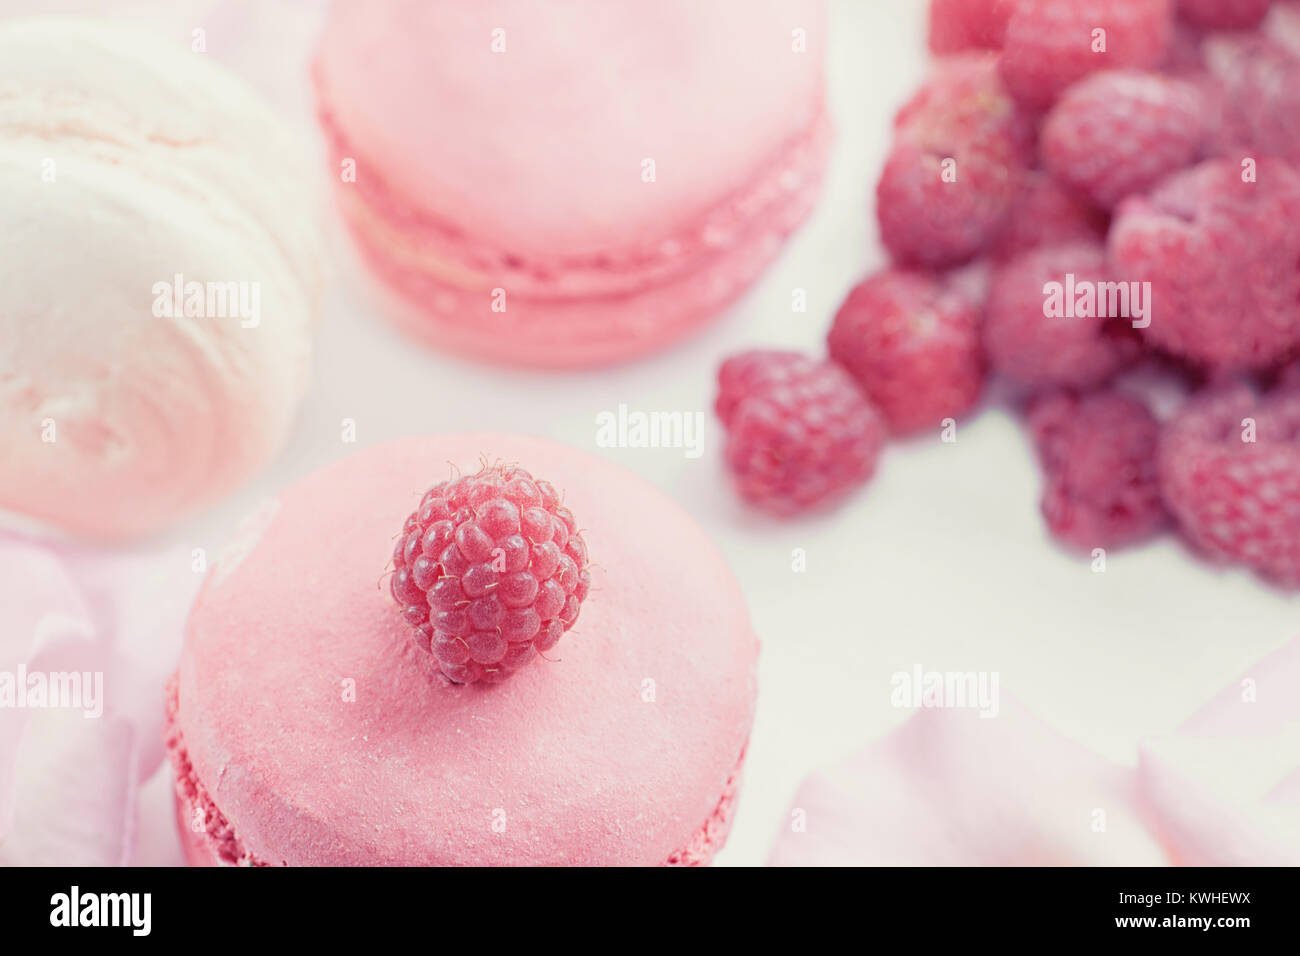 Pink raspberry macaroons with ripe raspberries. Selective focus. Dessert close-up - Stock Image